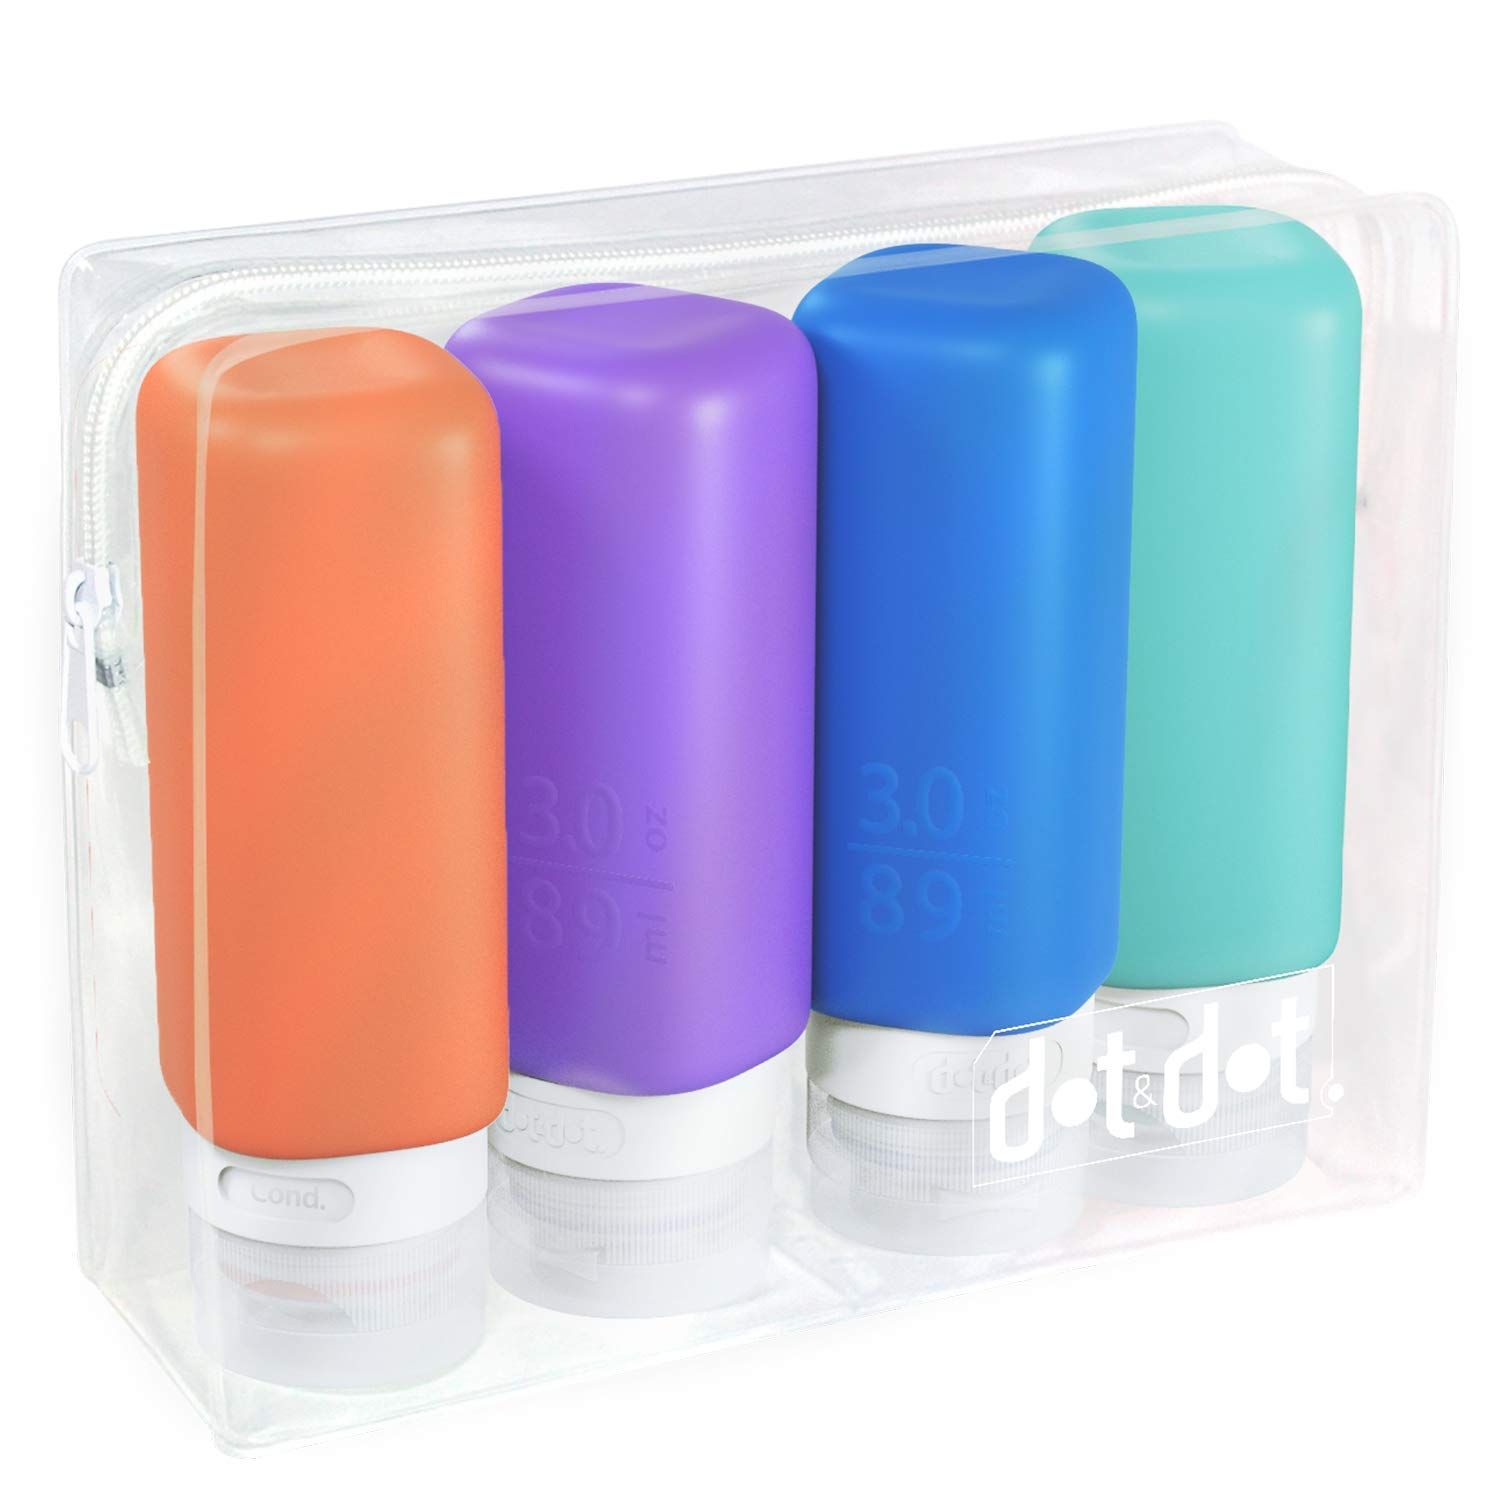 Leak Proof Refillable Silicone Travel Bottles - 3oz Travel Size Containers - Squeeze Bottle with TSA Bag